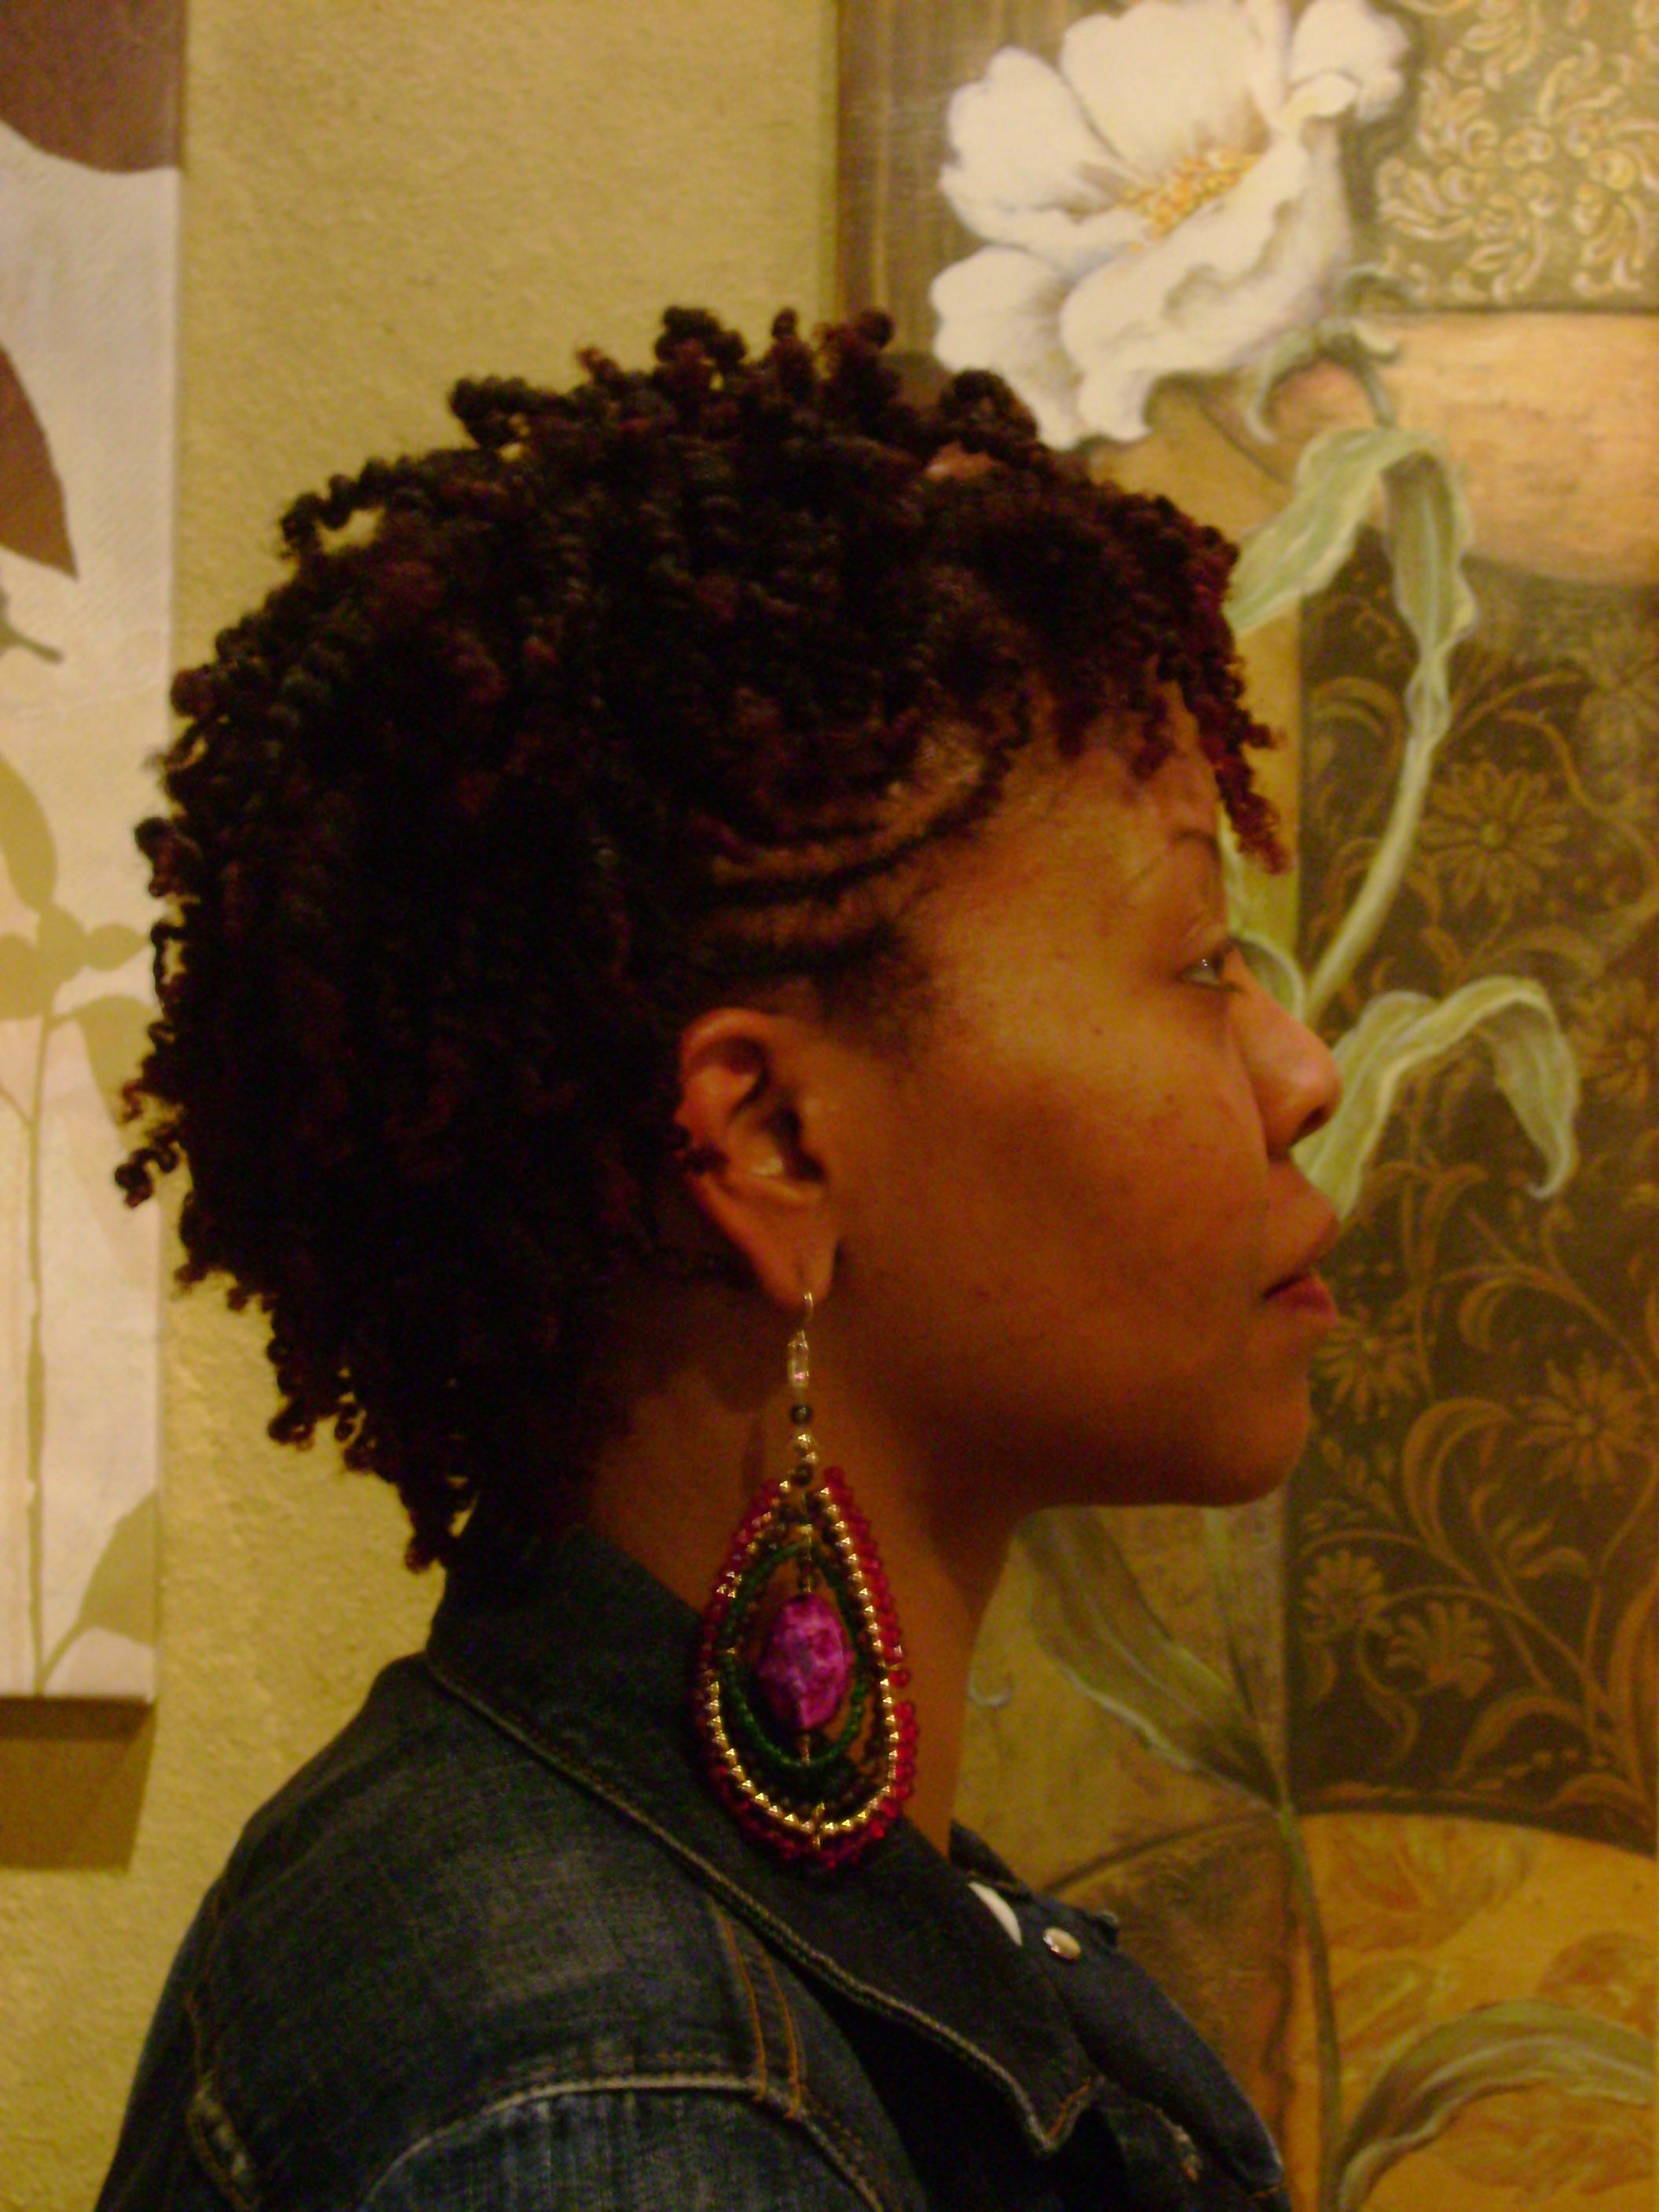 Two strand twist with extensions twist hairstyles on before two strand twist with extensions twist hairstyles on before after two strand twist baditri Images